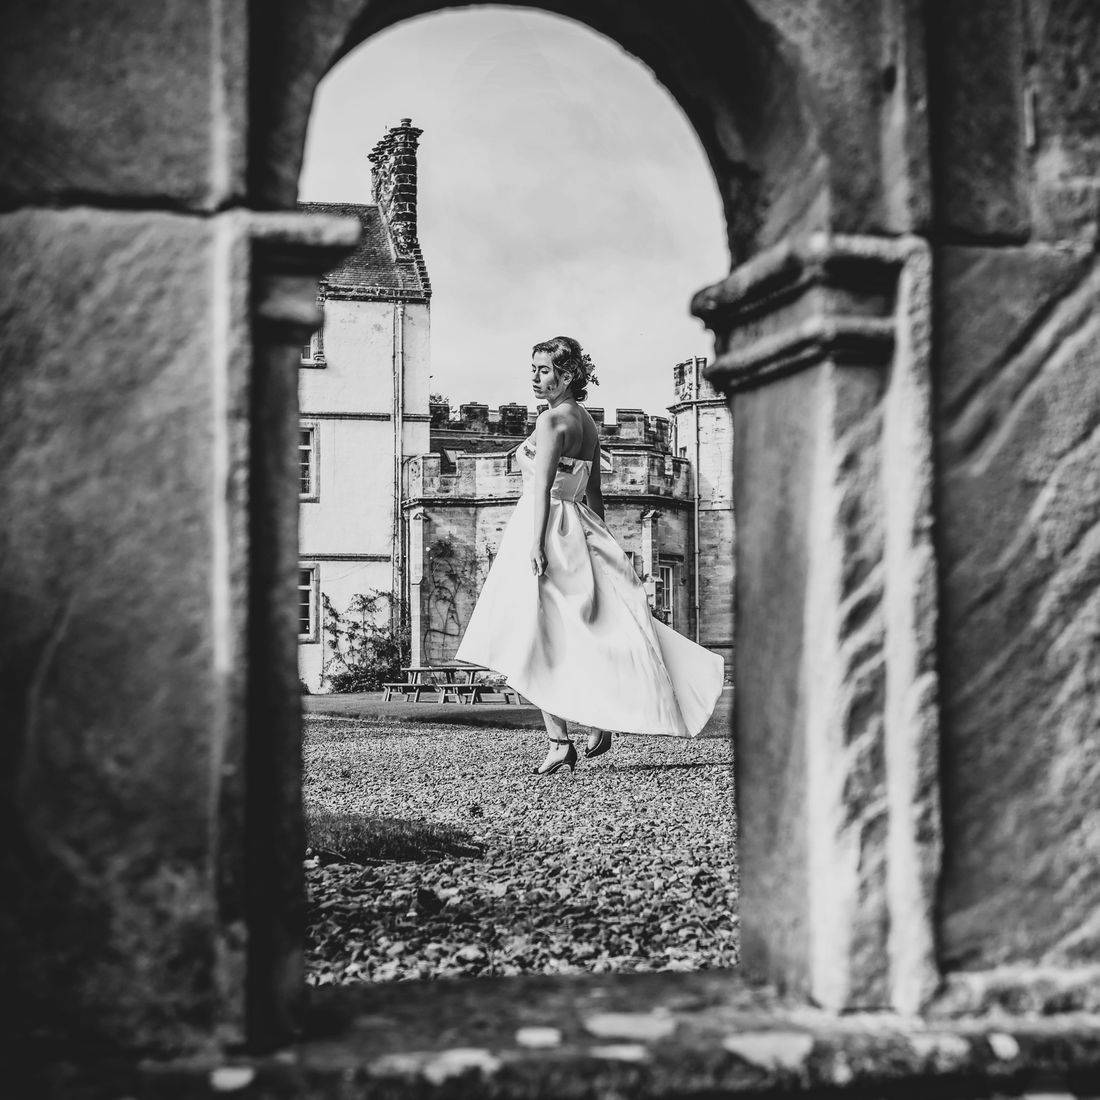 Image of a Bride through a frame